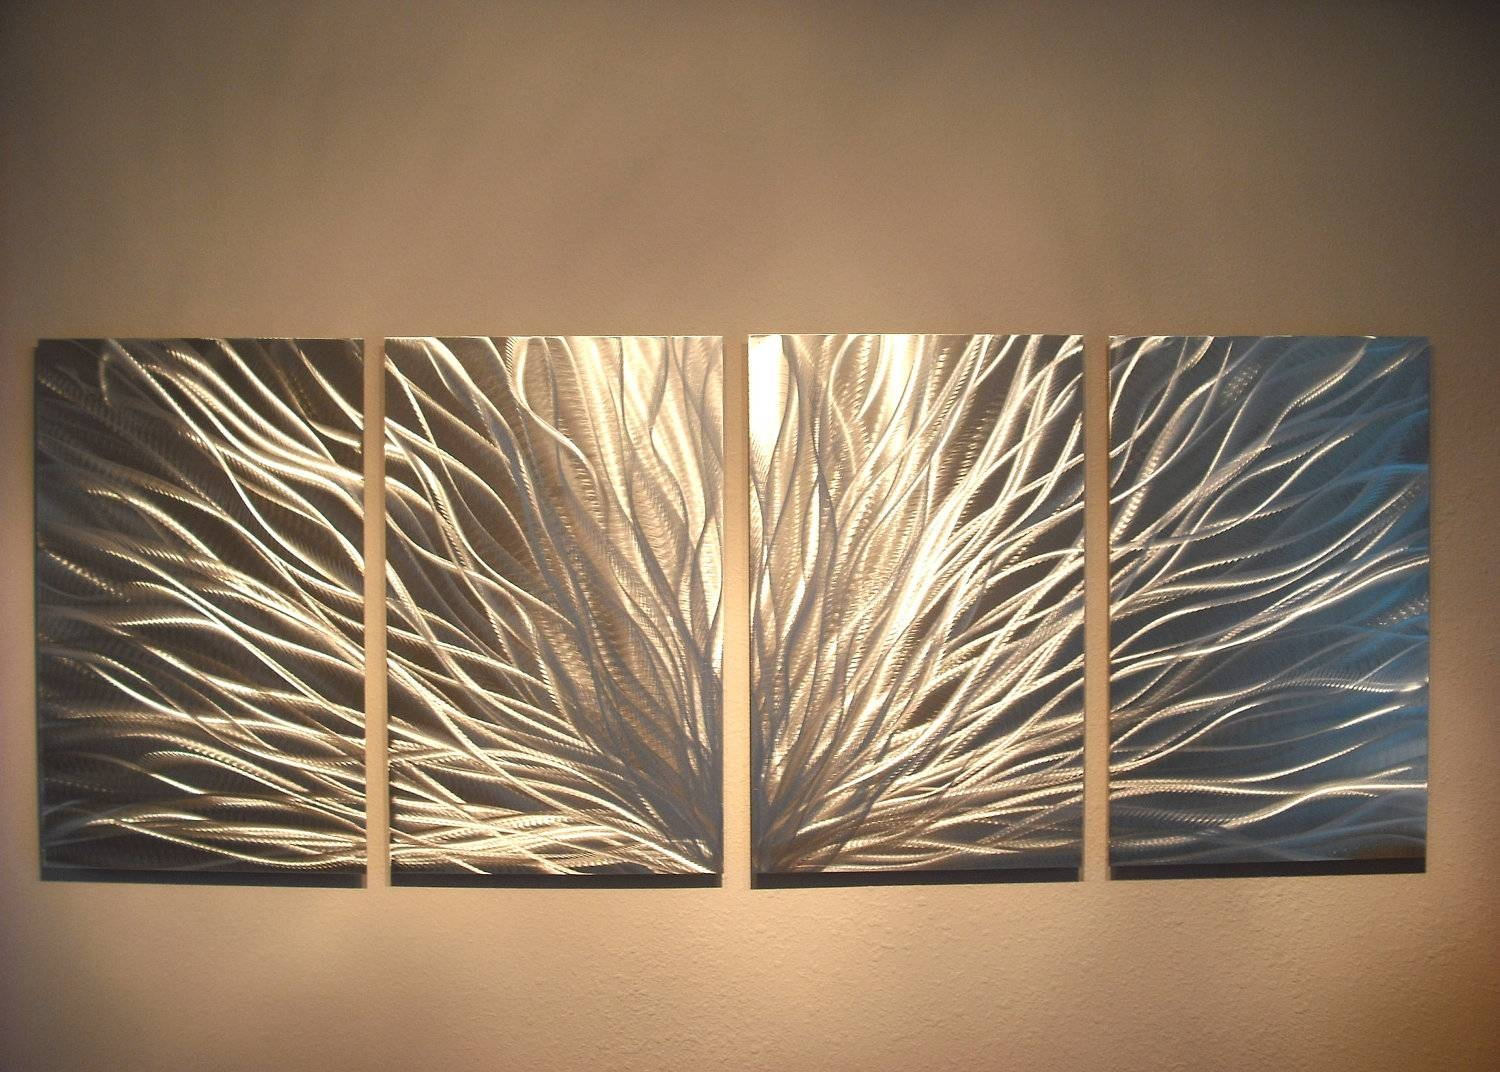 Radiance – Abstract Metal Wall Art Contemporary Modern Decor In Most Popular Modern Metal Wall Art Decors (Gallery 1 of 20)